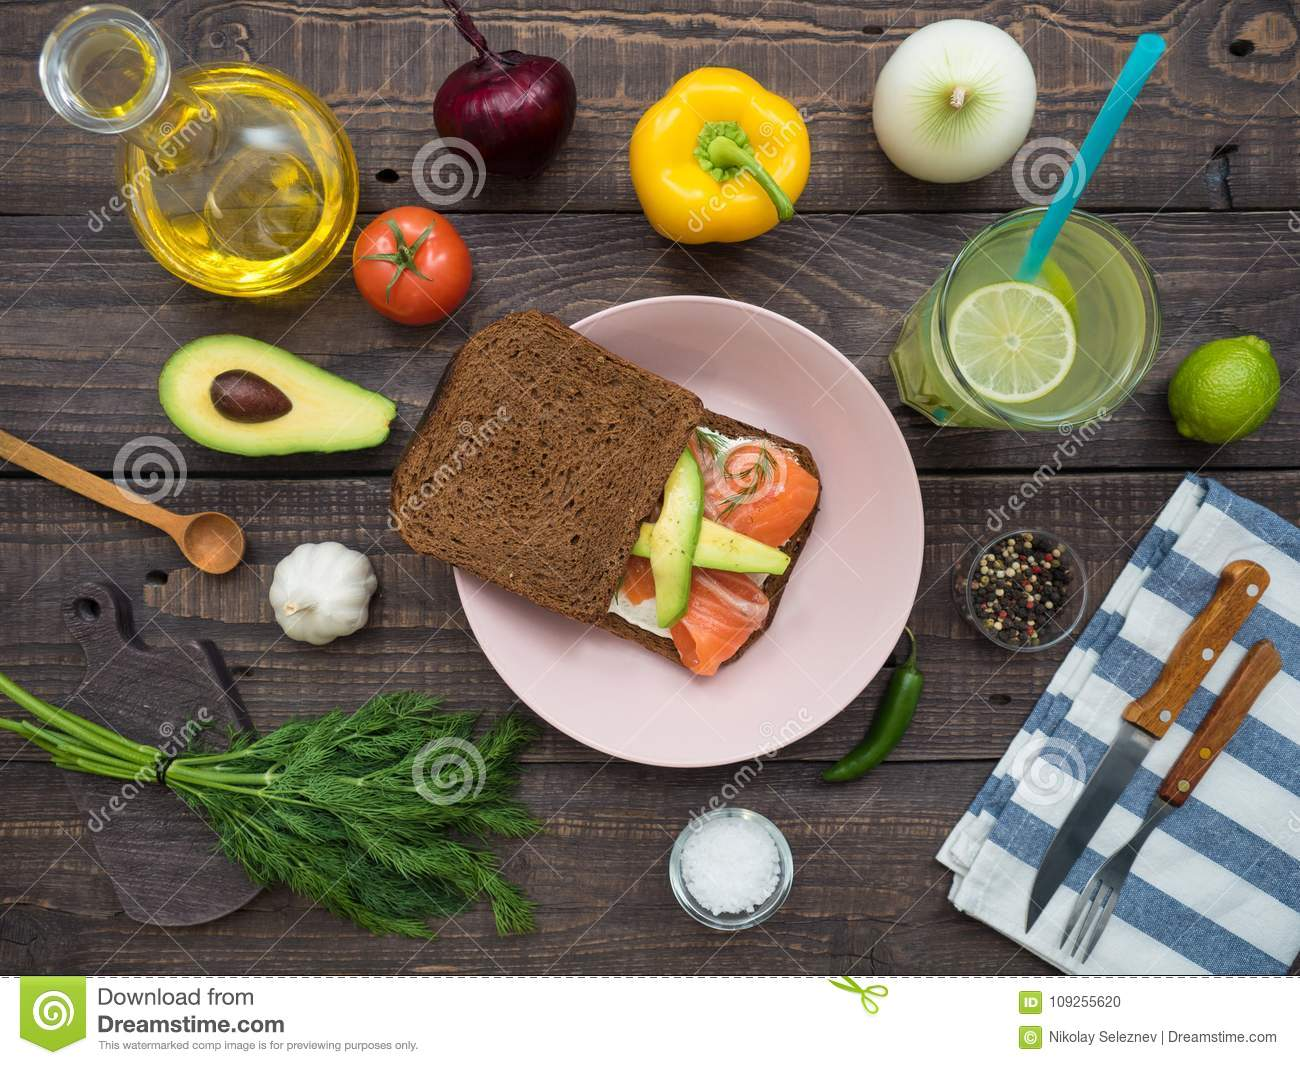 Sandwich with salmon, black bread on a plate, vegetables and a glass of lemonade